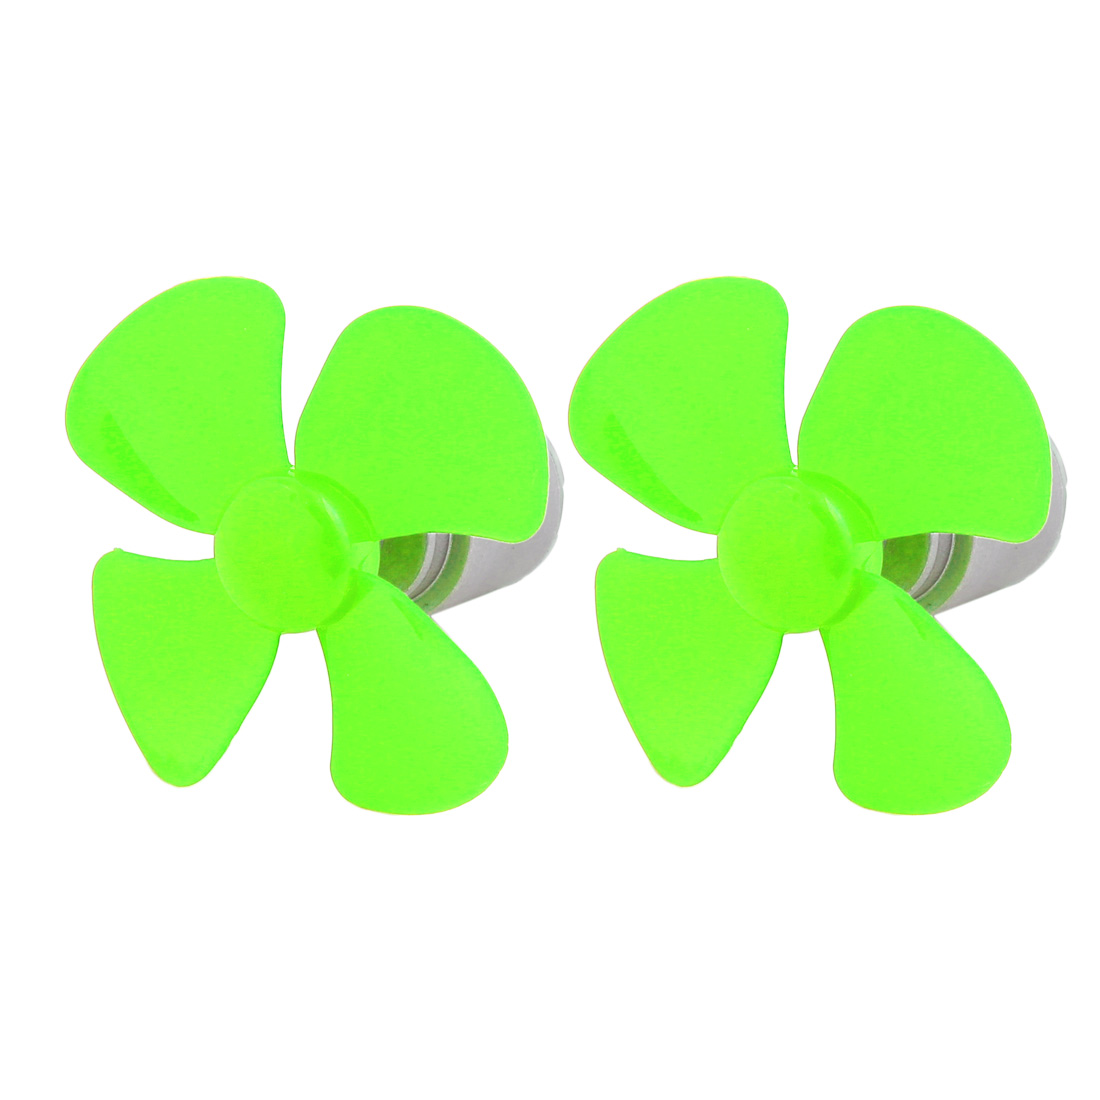 2pcs DC 3V 0.13A 6500RPM Green Strong Force Motor 4 Vanes 56mm Dia Propeller for RC Aircraft